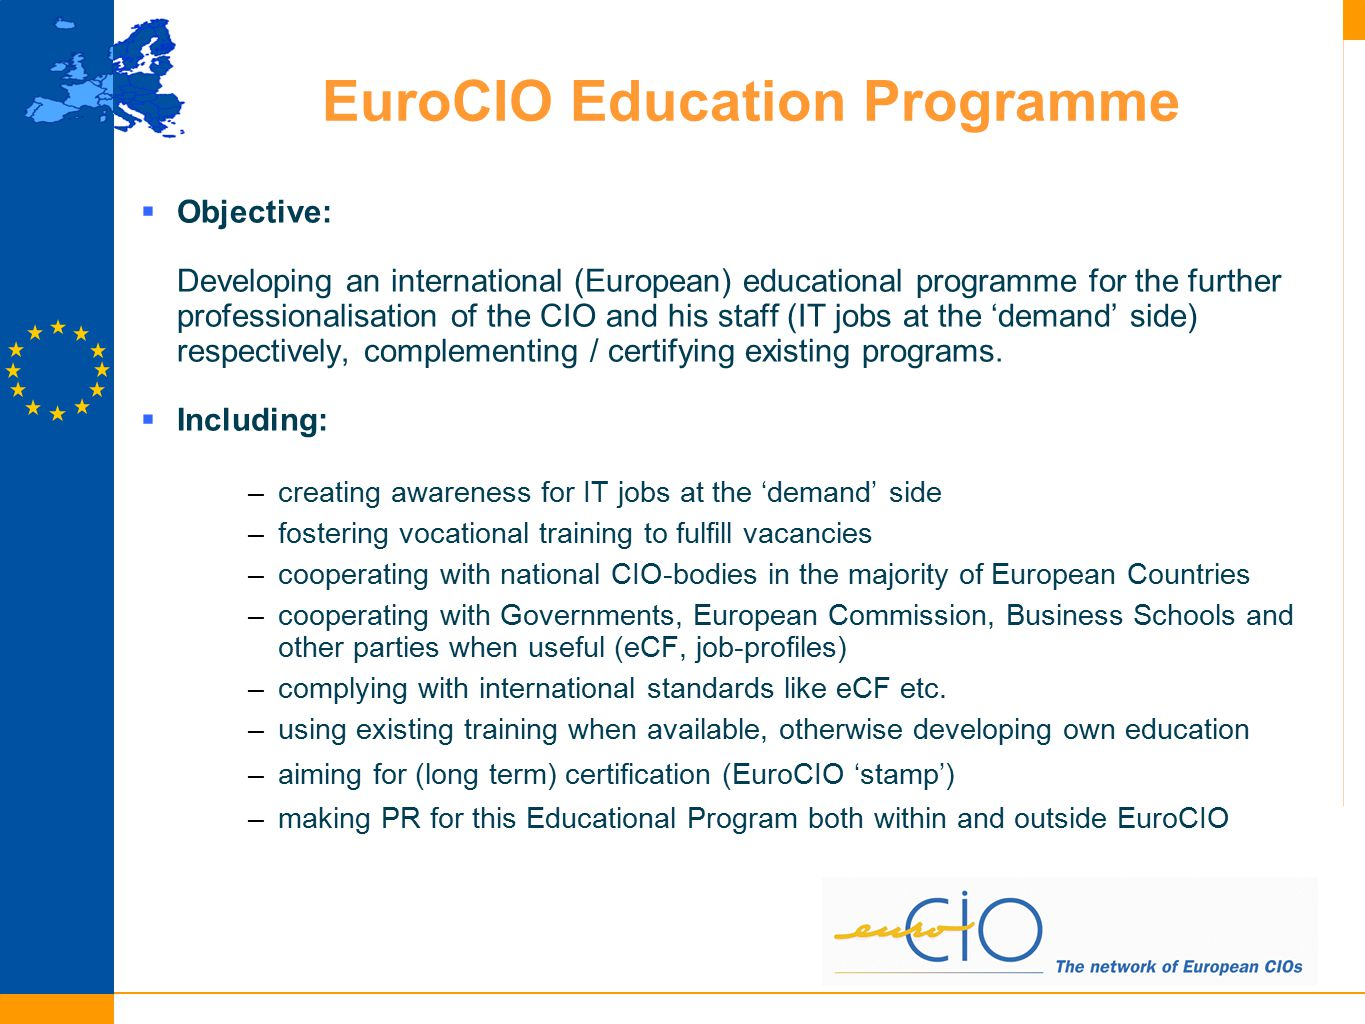 Positioning the EuroCIO Executive Education Programme Advanced Courses for ICT managers in the ICT-supply industry Courses + University programs for technicians and programmers Technical courses (e-business, web 2.0, ERP-use, end users) Management Staff Supply (ICT industry), Demand (CIO-community) Universities EuroCIO Educational Offering mainly addresses ICT Executives needs at the 'demand' side: - the need for business driven (innovation) ICT knowledge for management (e-leadership) our challenge: creating top management courses for the demand side: e-leadership